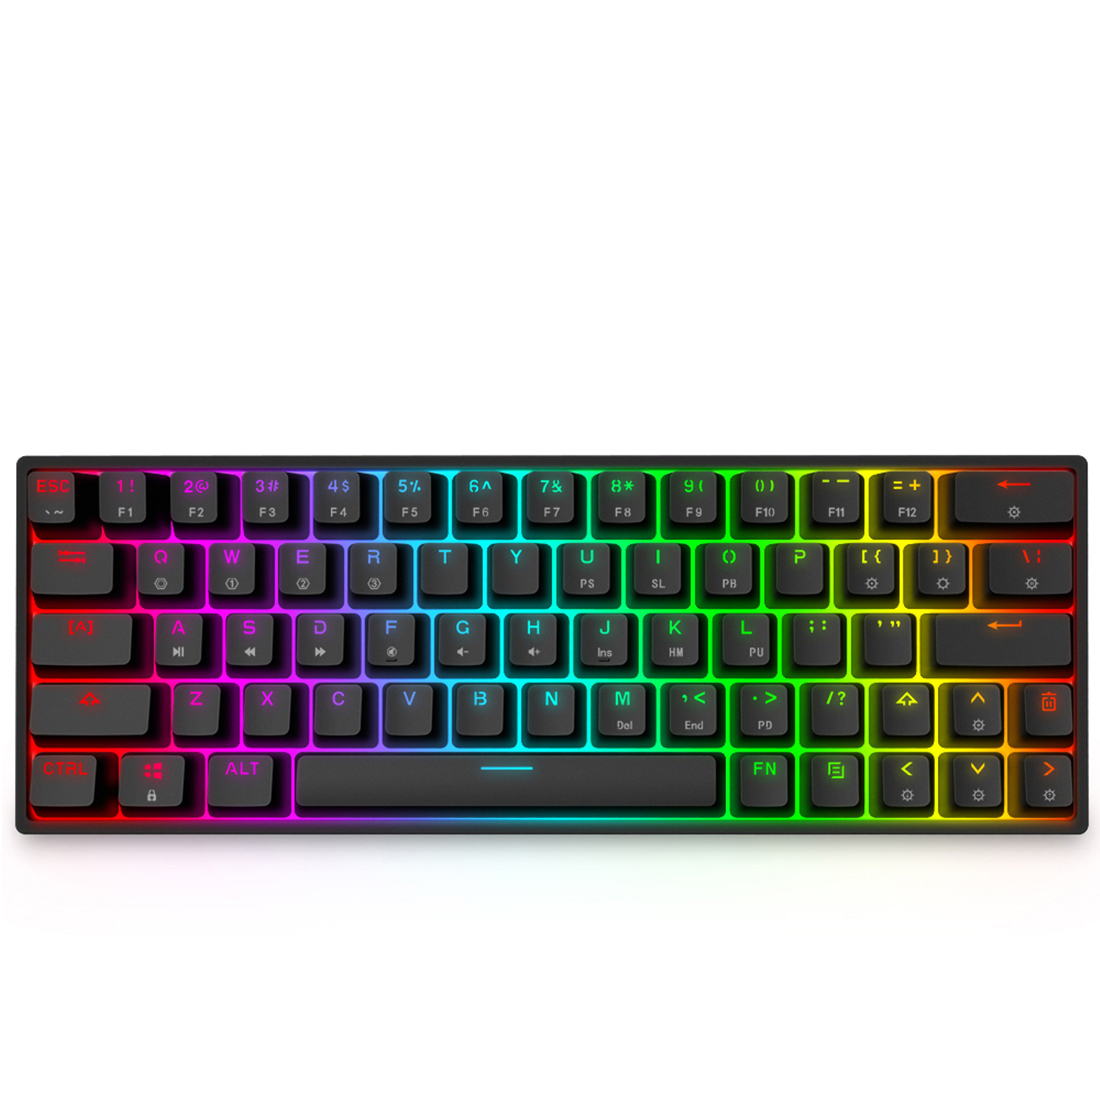 SK64 64-Key Gaming Mechanical Keyboard Wired RGB LED Backlit Programmable